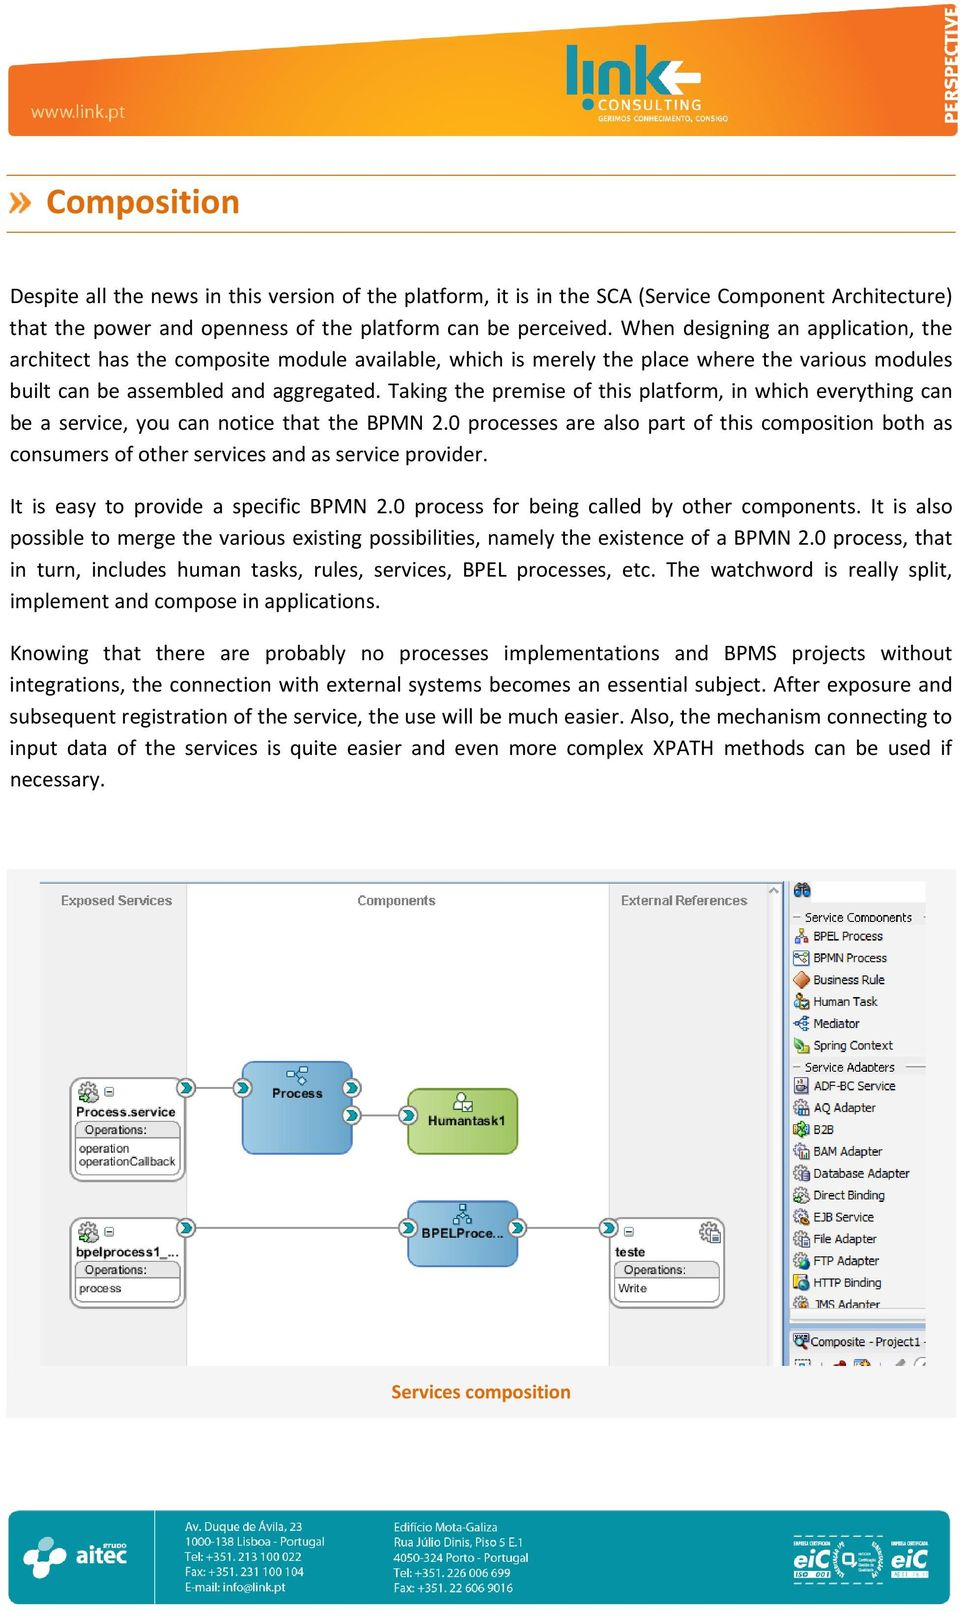 Taking the premise of this platform, in which everything can be a service, you can notice that the BPMN 2.